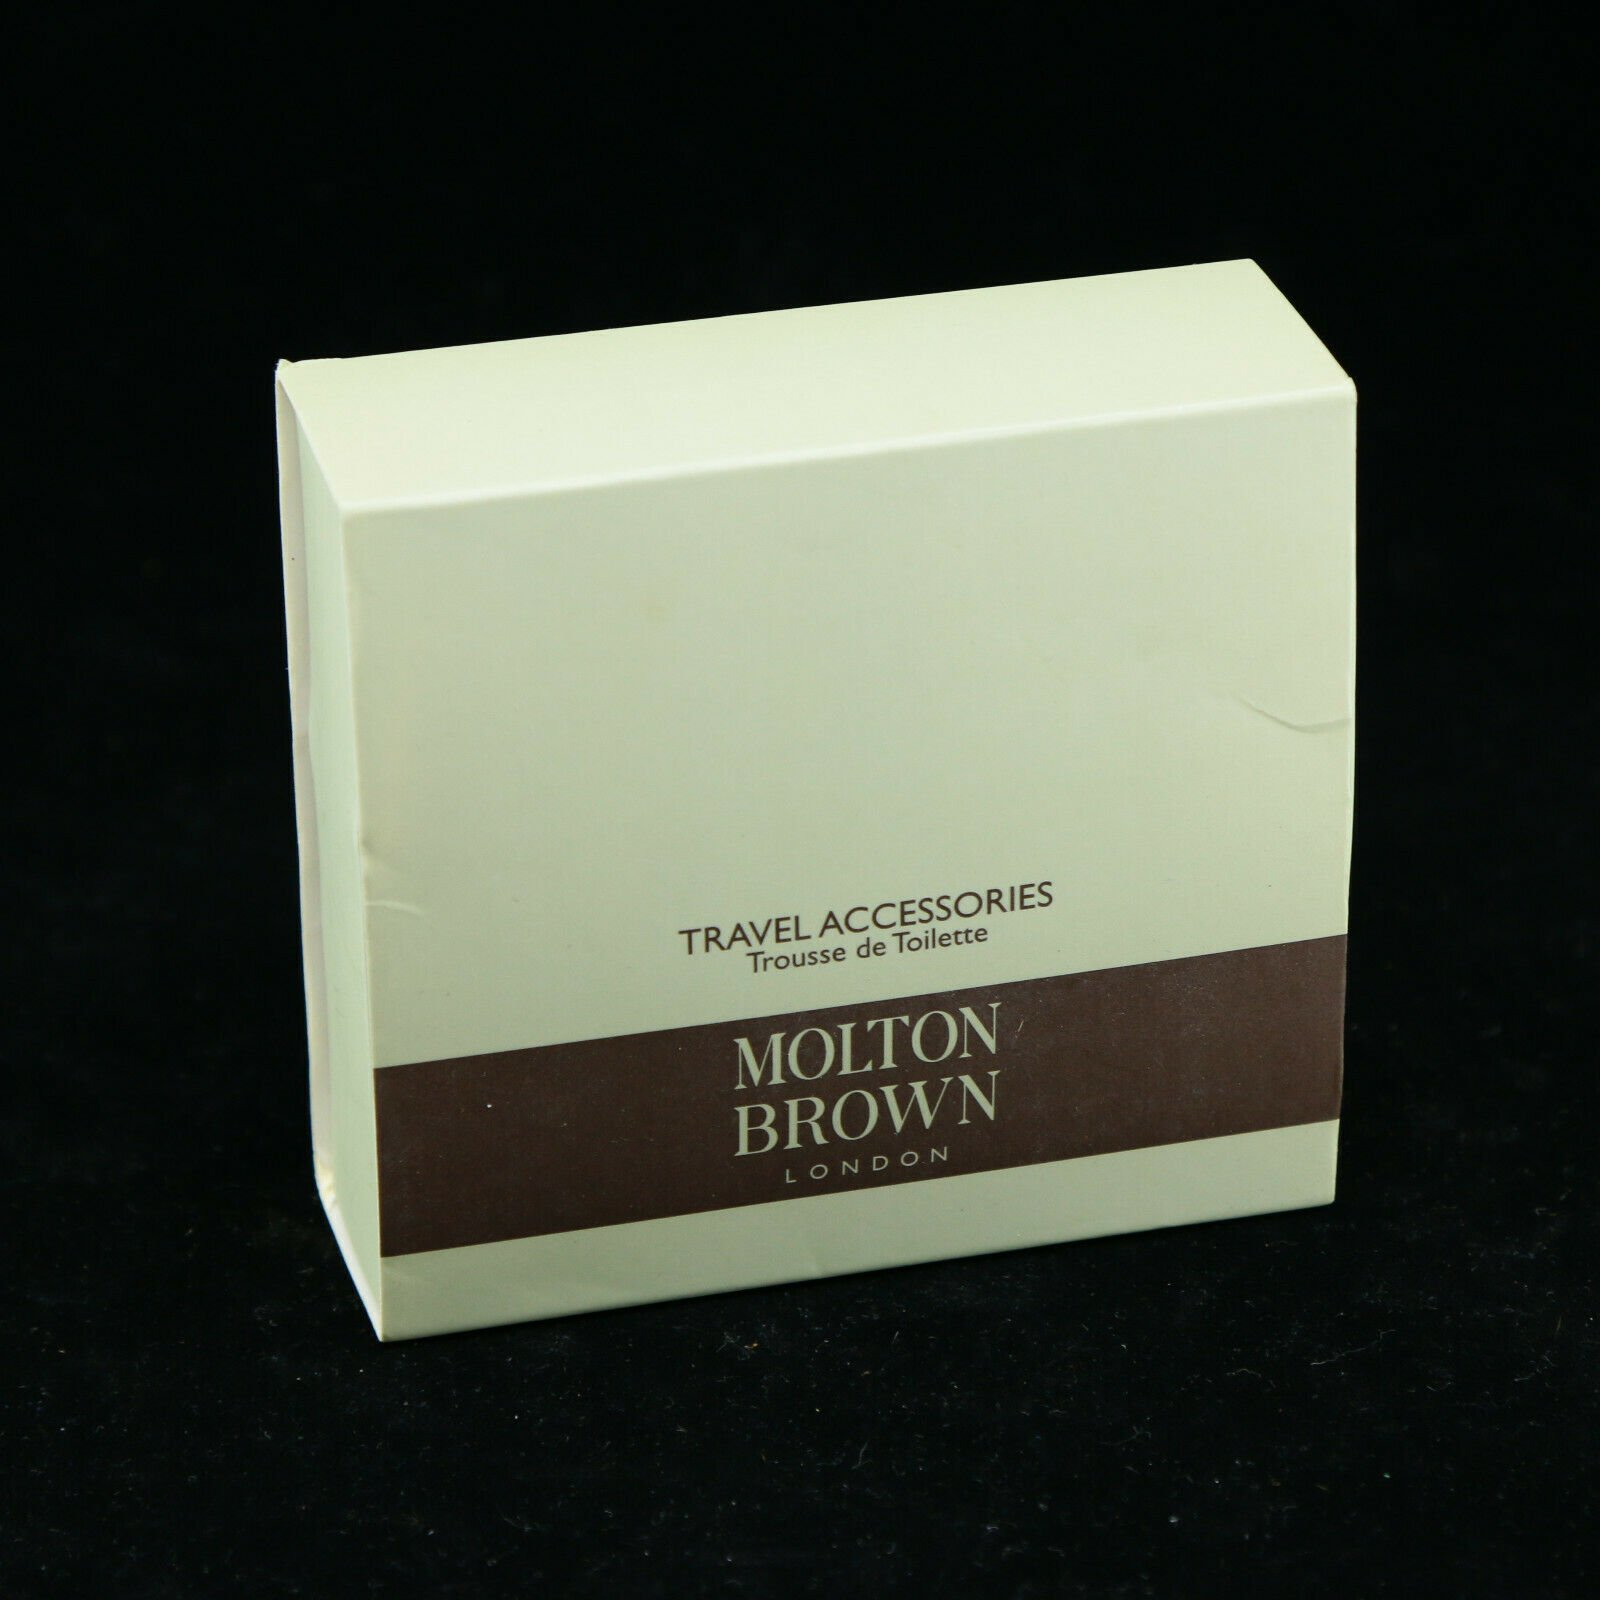 Molton Brown London Travel Accessories Box w/ Shower Cap Mending Kit S...